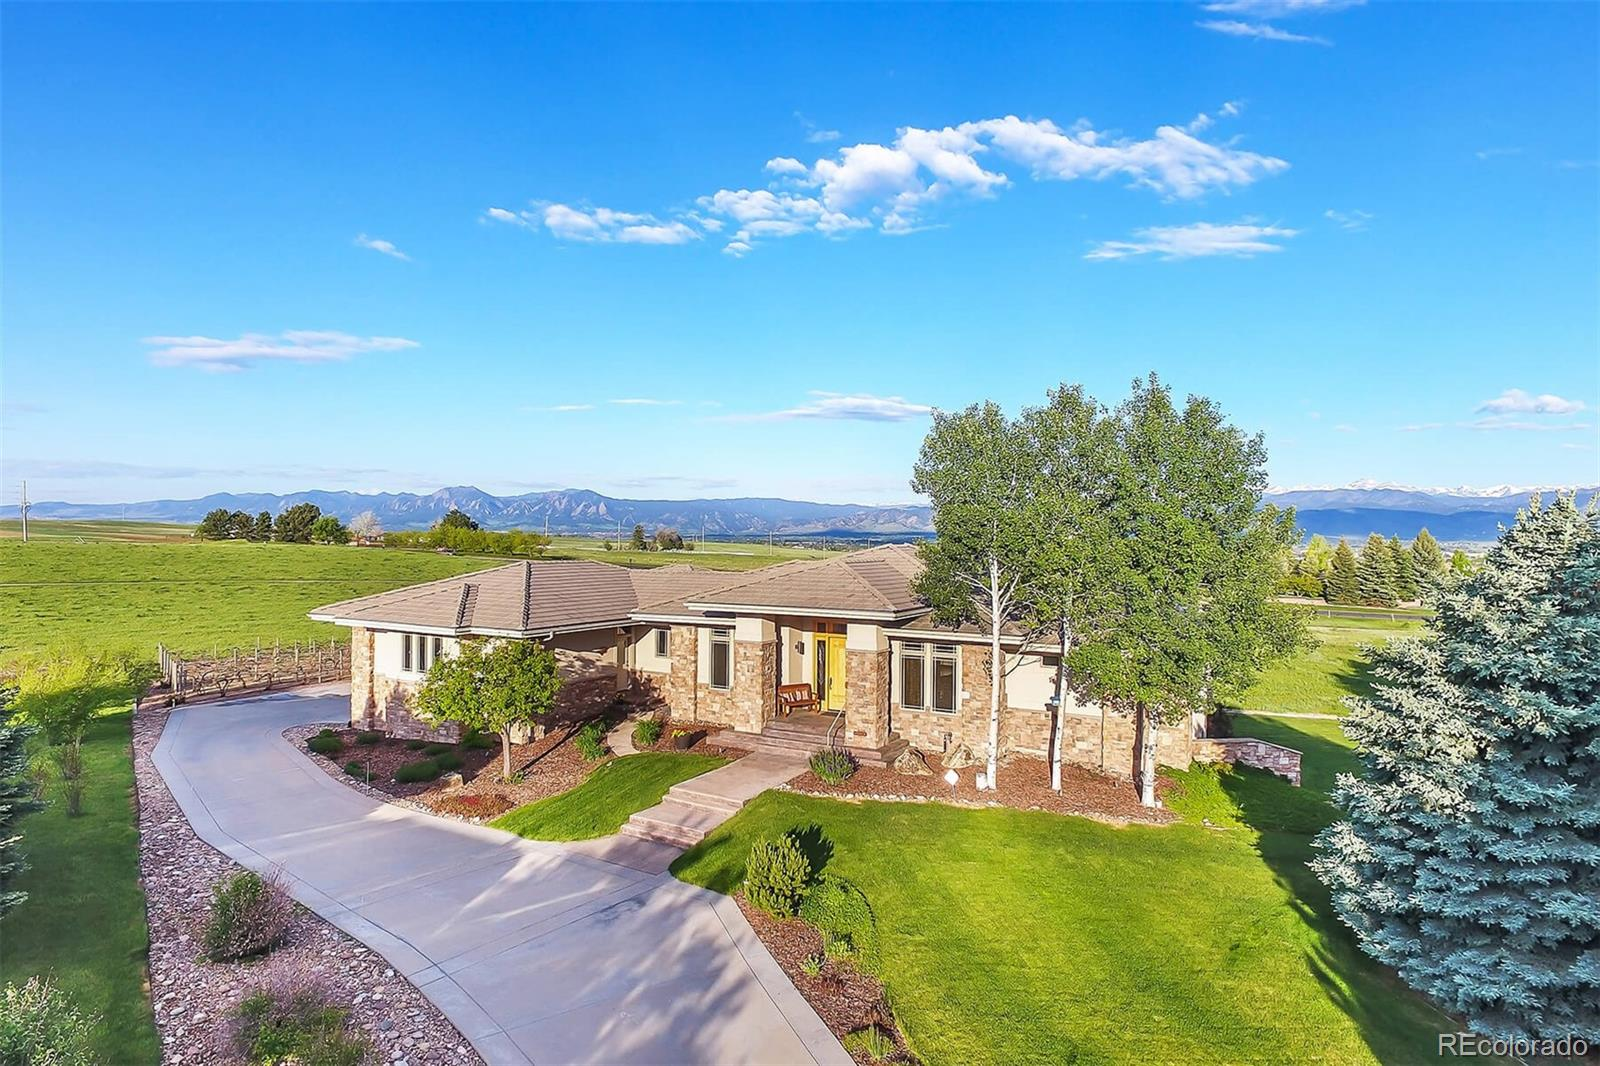 6690 Legend Ridge Trail, Niwot, CO 80503 - Niwot, CO real estate listing